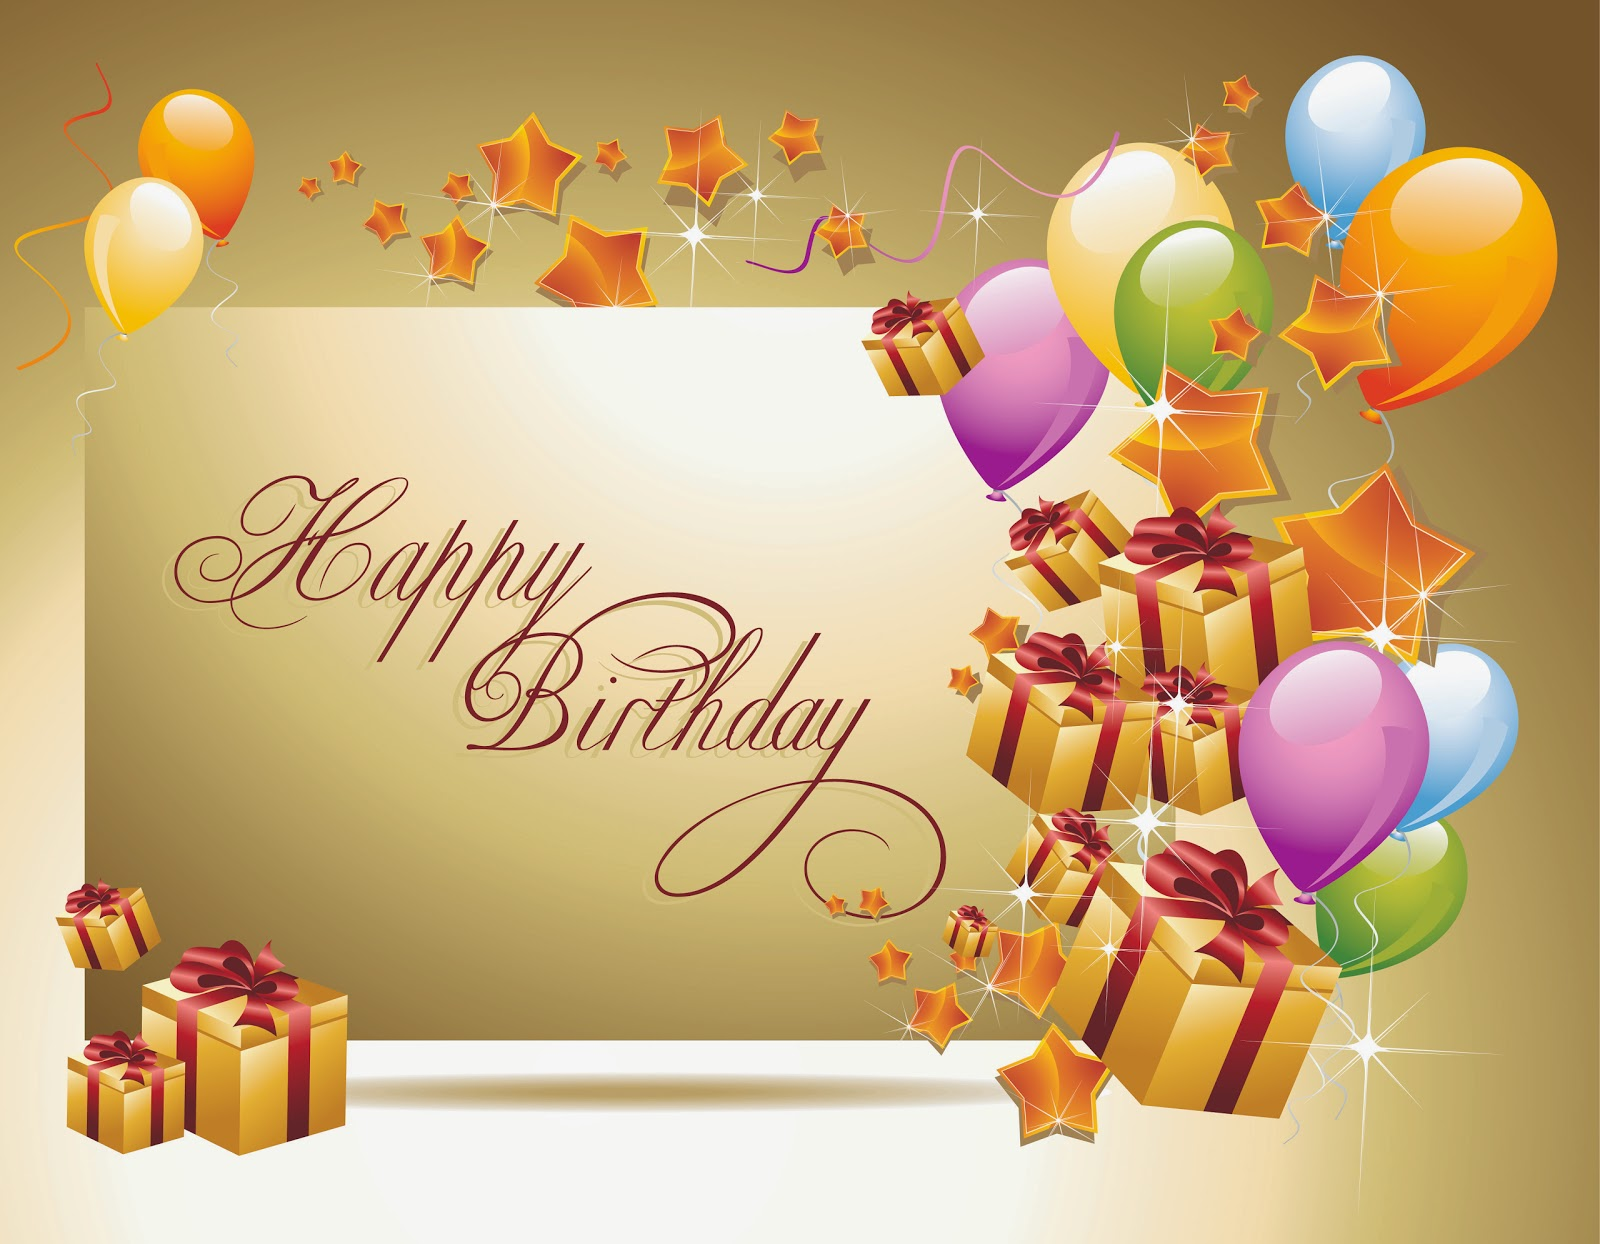 birthday greetings hd images ; Birthday-Greeting-Cards-Hd-and-get-inspiration-to-create-the-birthday-Card-design-of-your-dreams-1